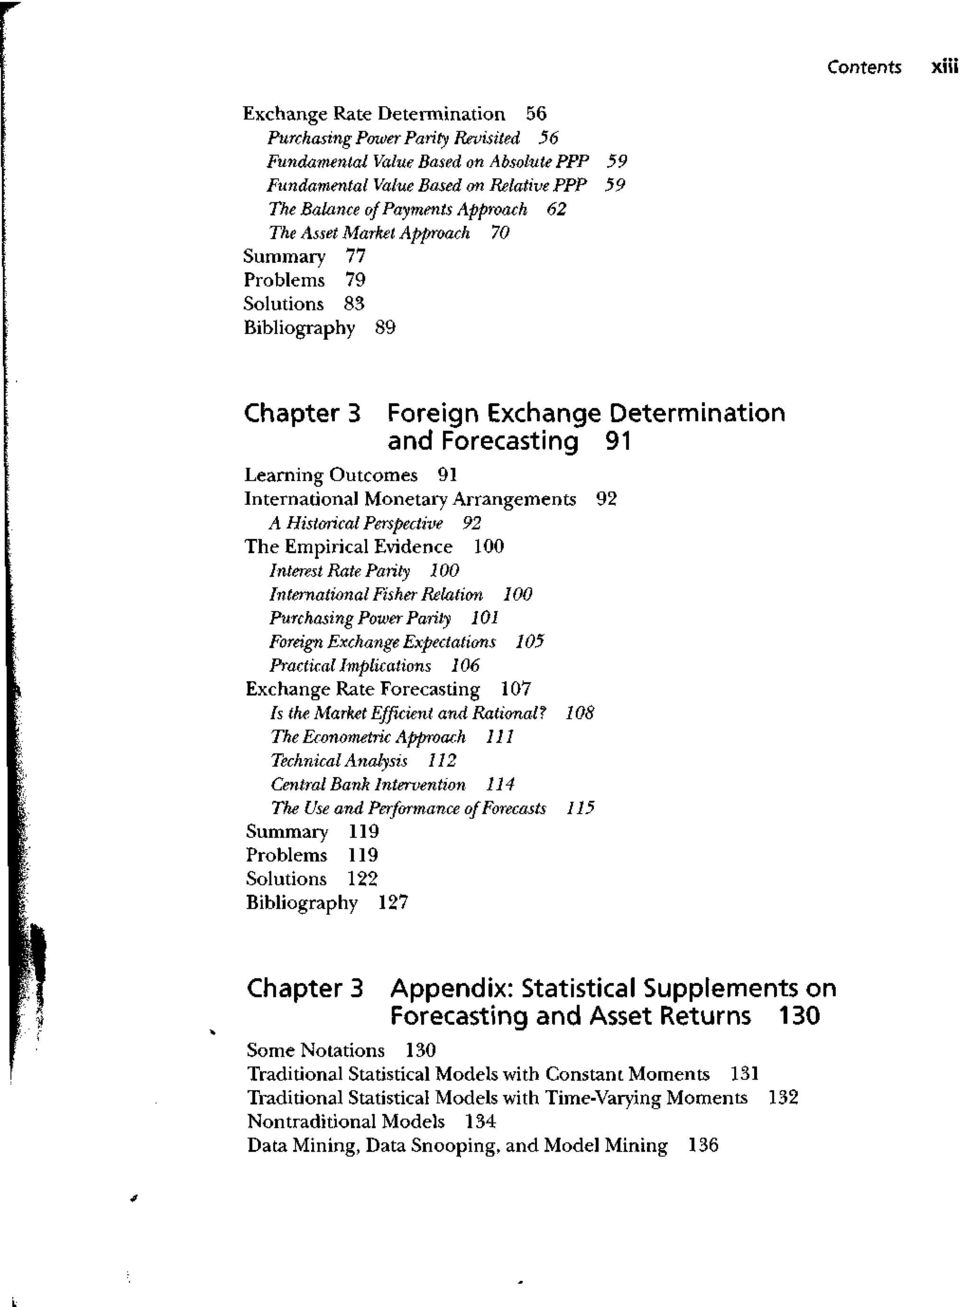 Arrangements 92 A Historical Perspective 92 The Empirical Evidence 100 Interest Rate Parity 100 International Fisher Relation 100 Purchasing Power Parity 101 Foreign Exchange Expectations 105